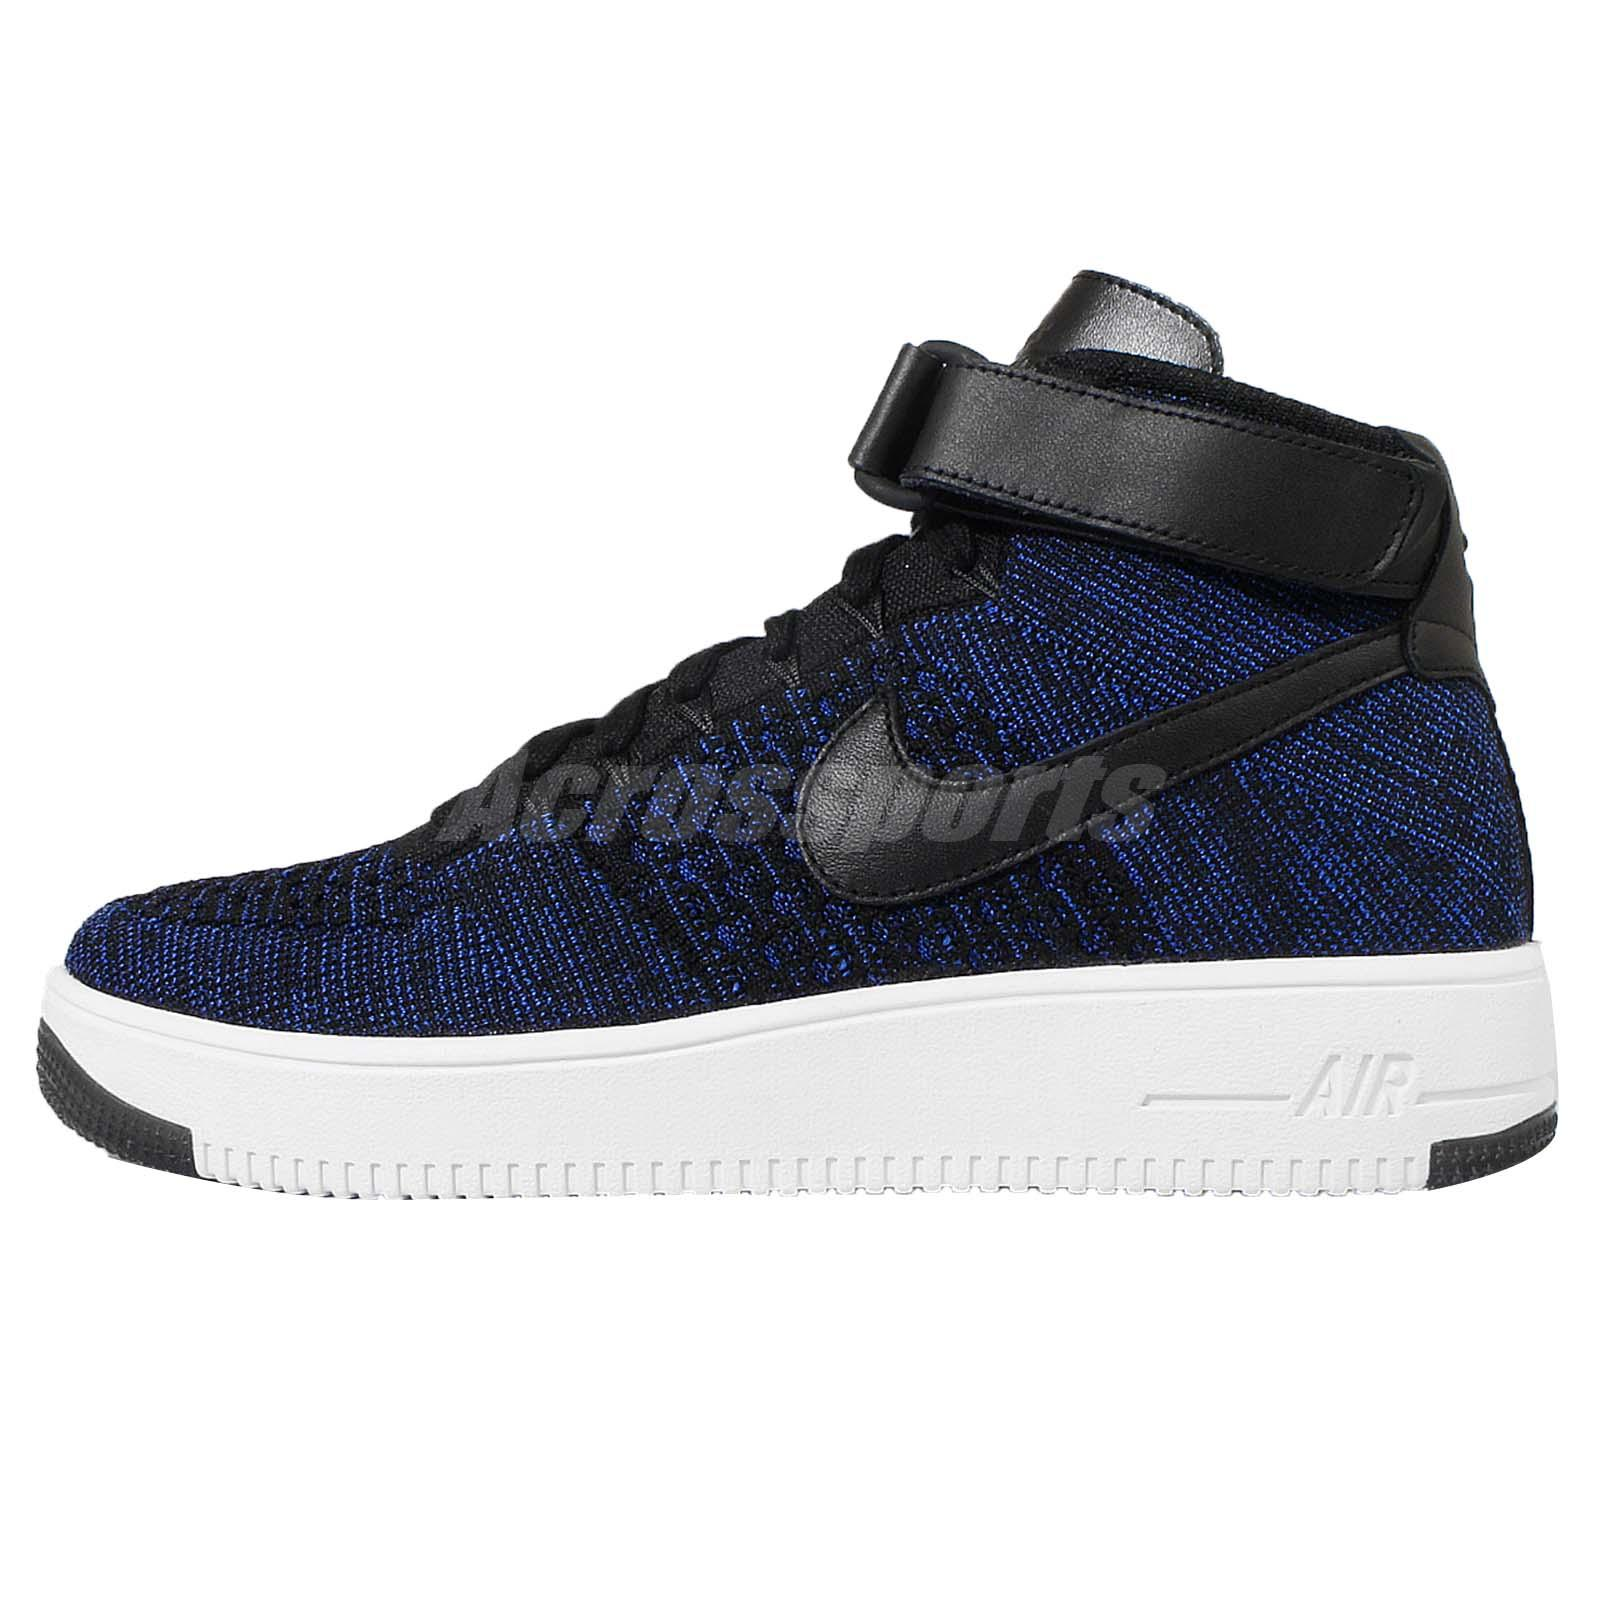 Nike Air Force 1 Ultra Flyknit Mid Game Royal/Black 817420400